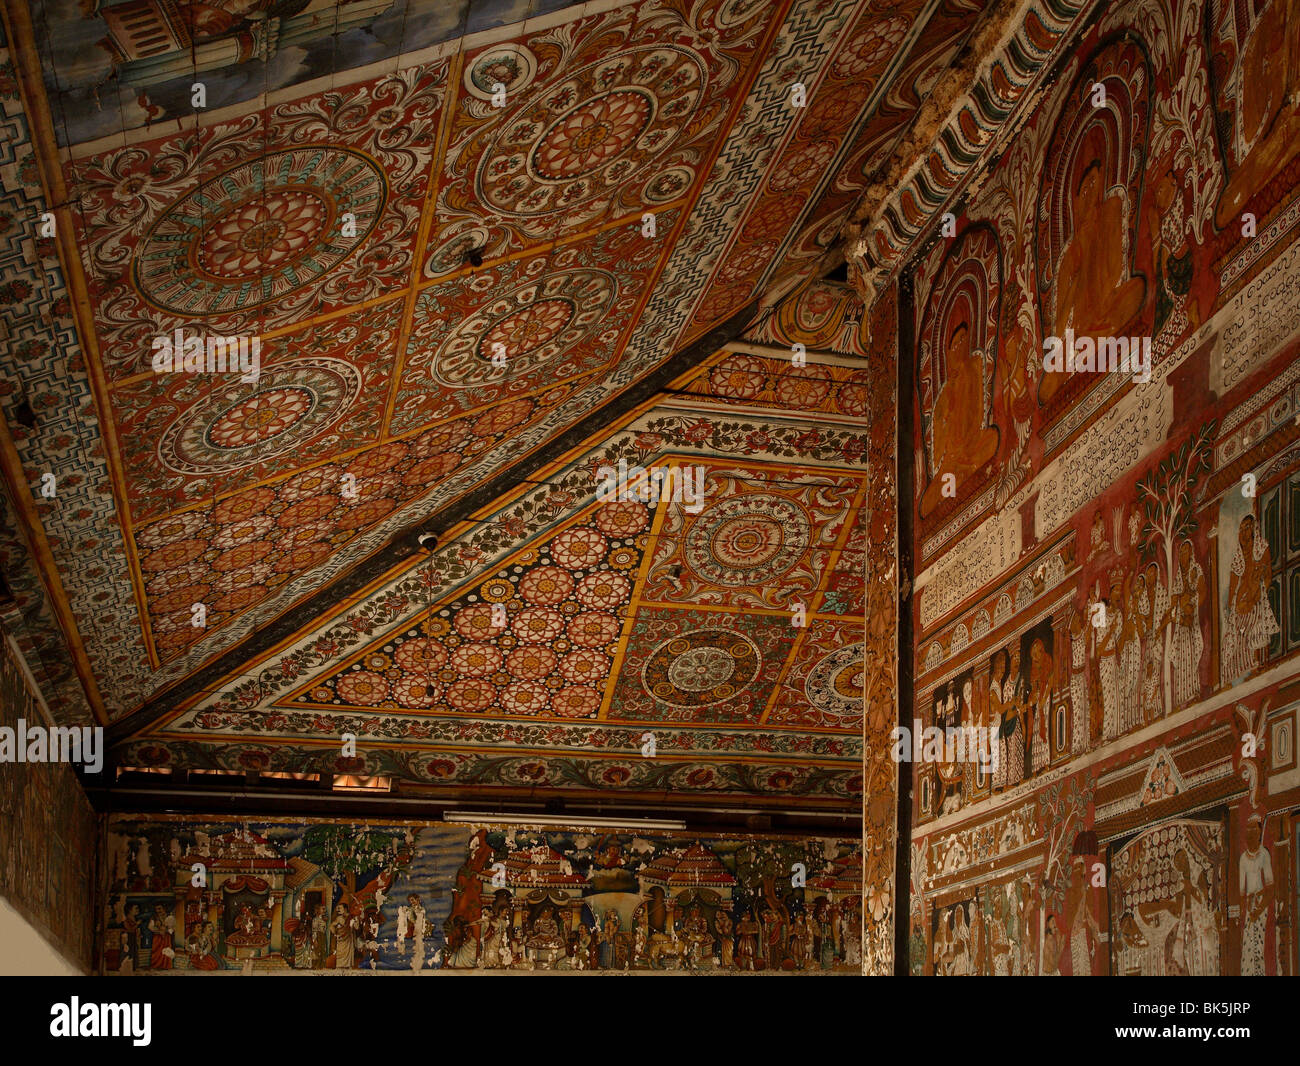 Ceiling Of The Image House, Subodharama Temple, Dating From The Mid 19th  Century, Dehiwala, Colombo, Sri Lanka, Asia